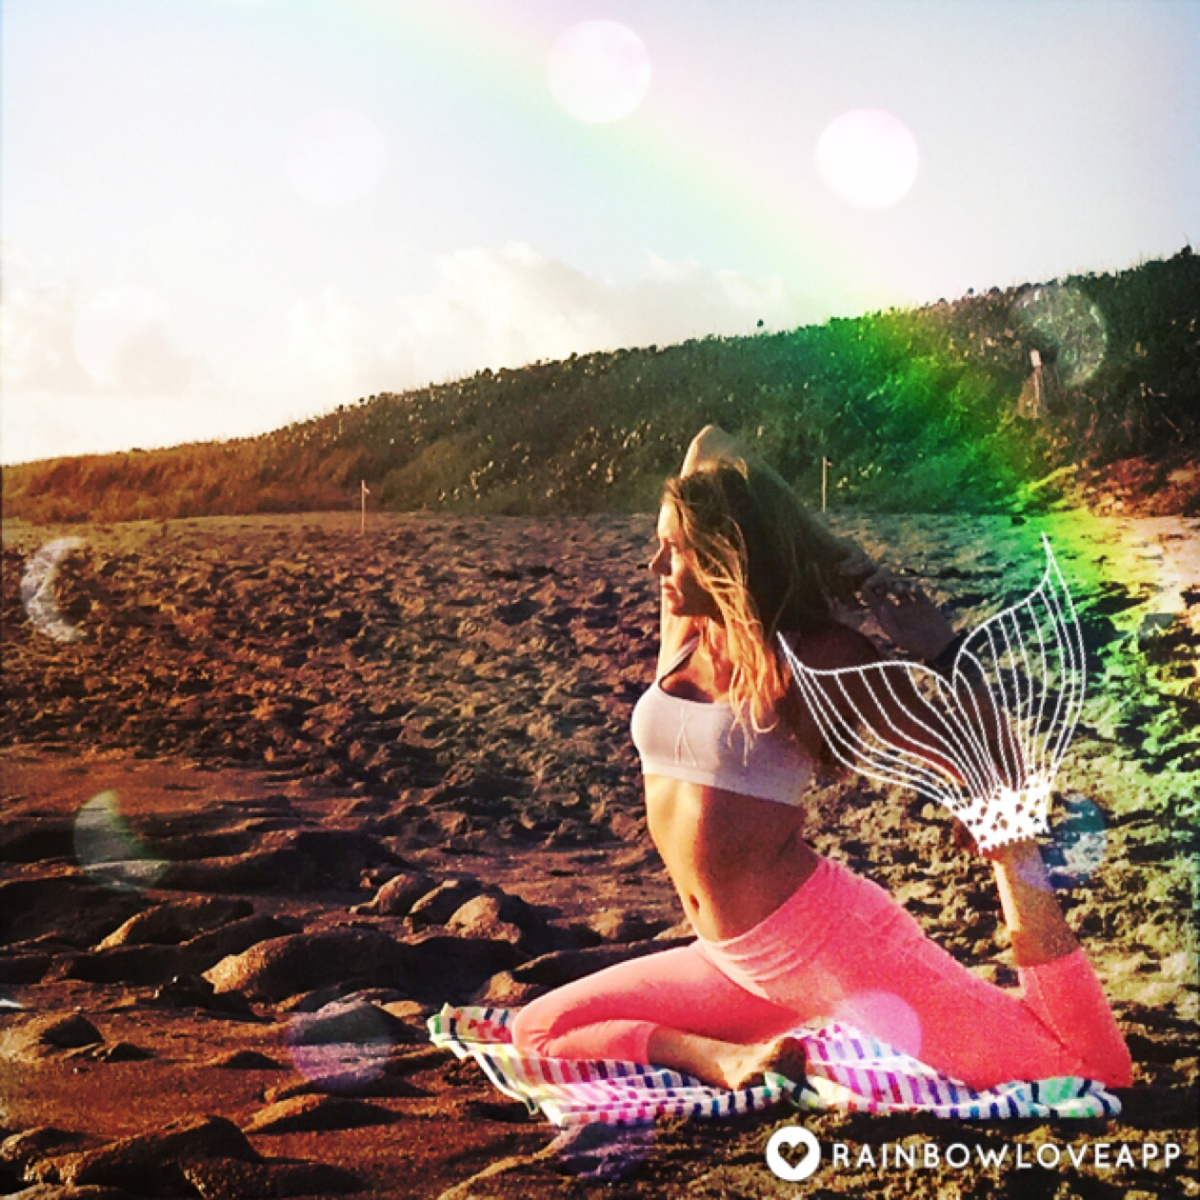 rainbow-love-app-moon-filters-and-moon-art-best-photo-editing-apps-mermaid-fin-mermaid-yogi-apps